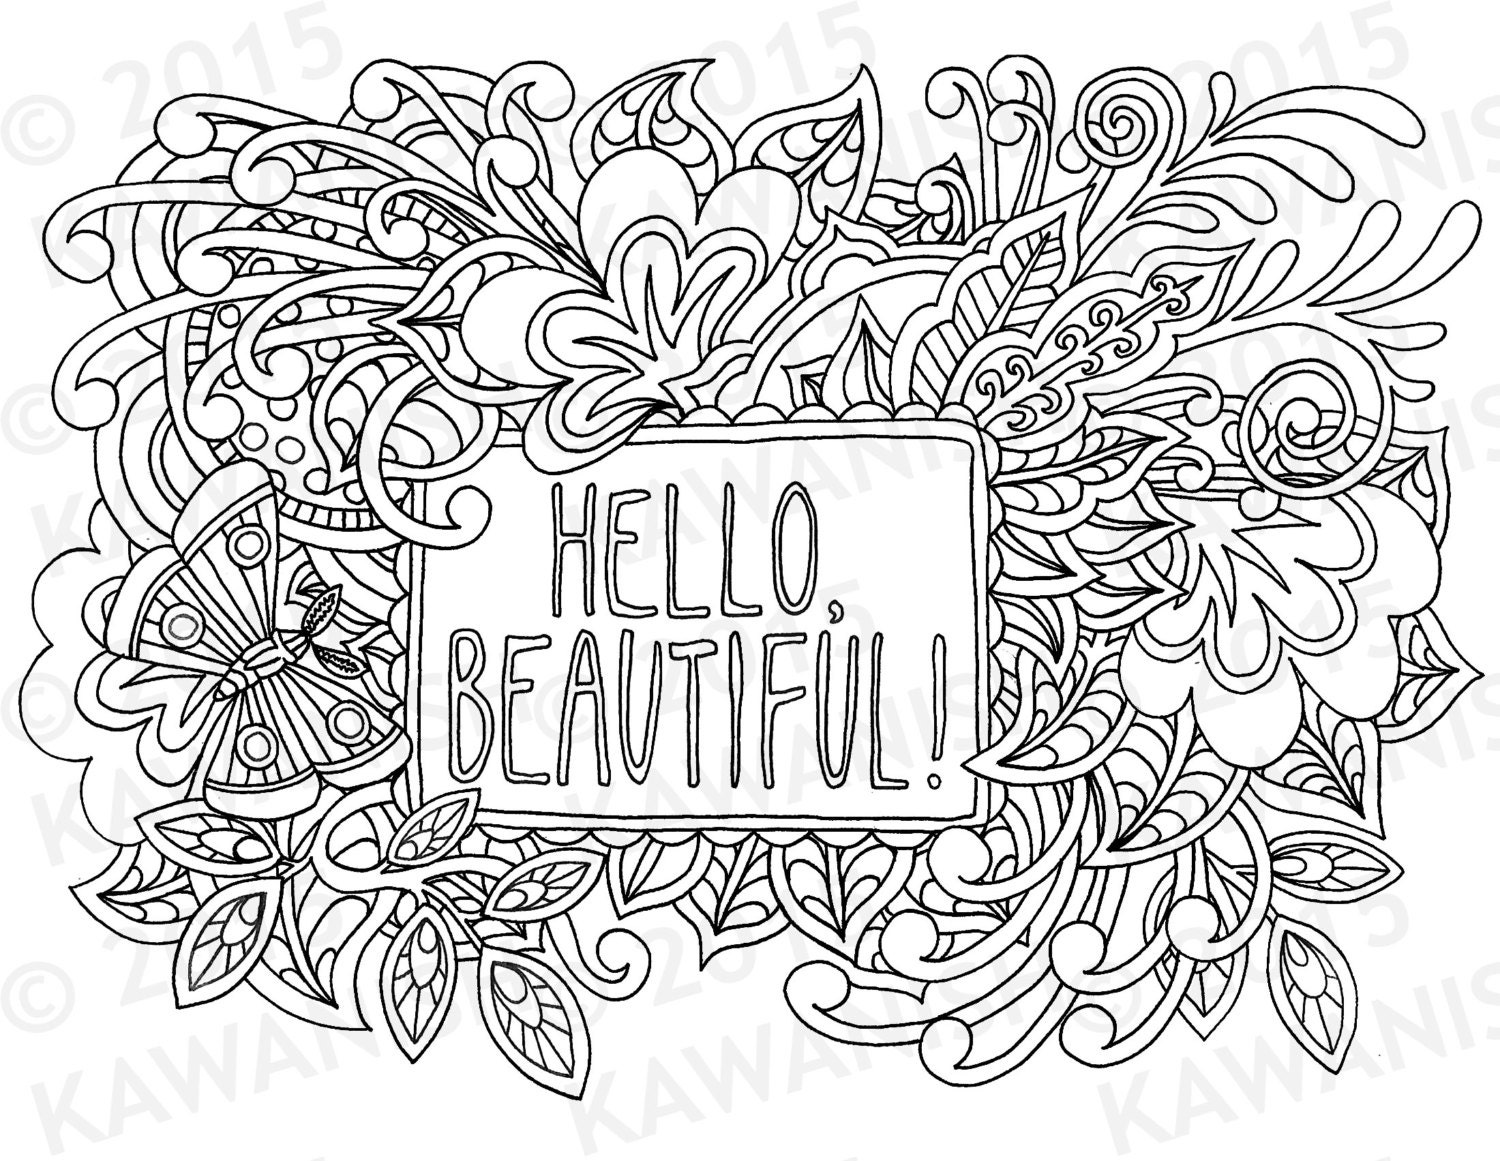 hello beautiful adult coloring page gift wall art zentangle